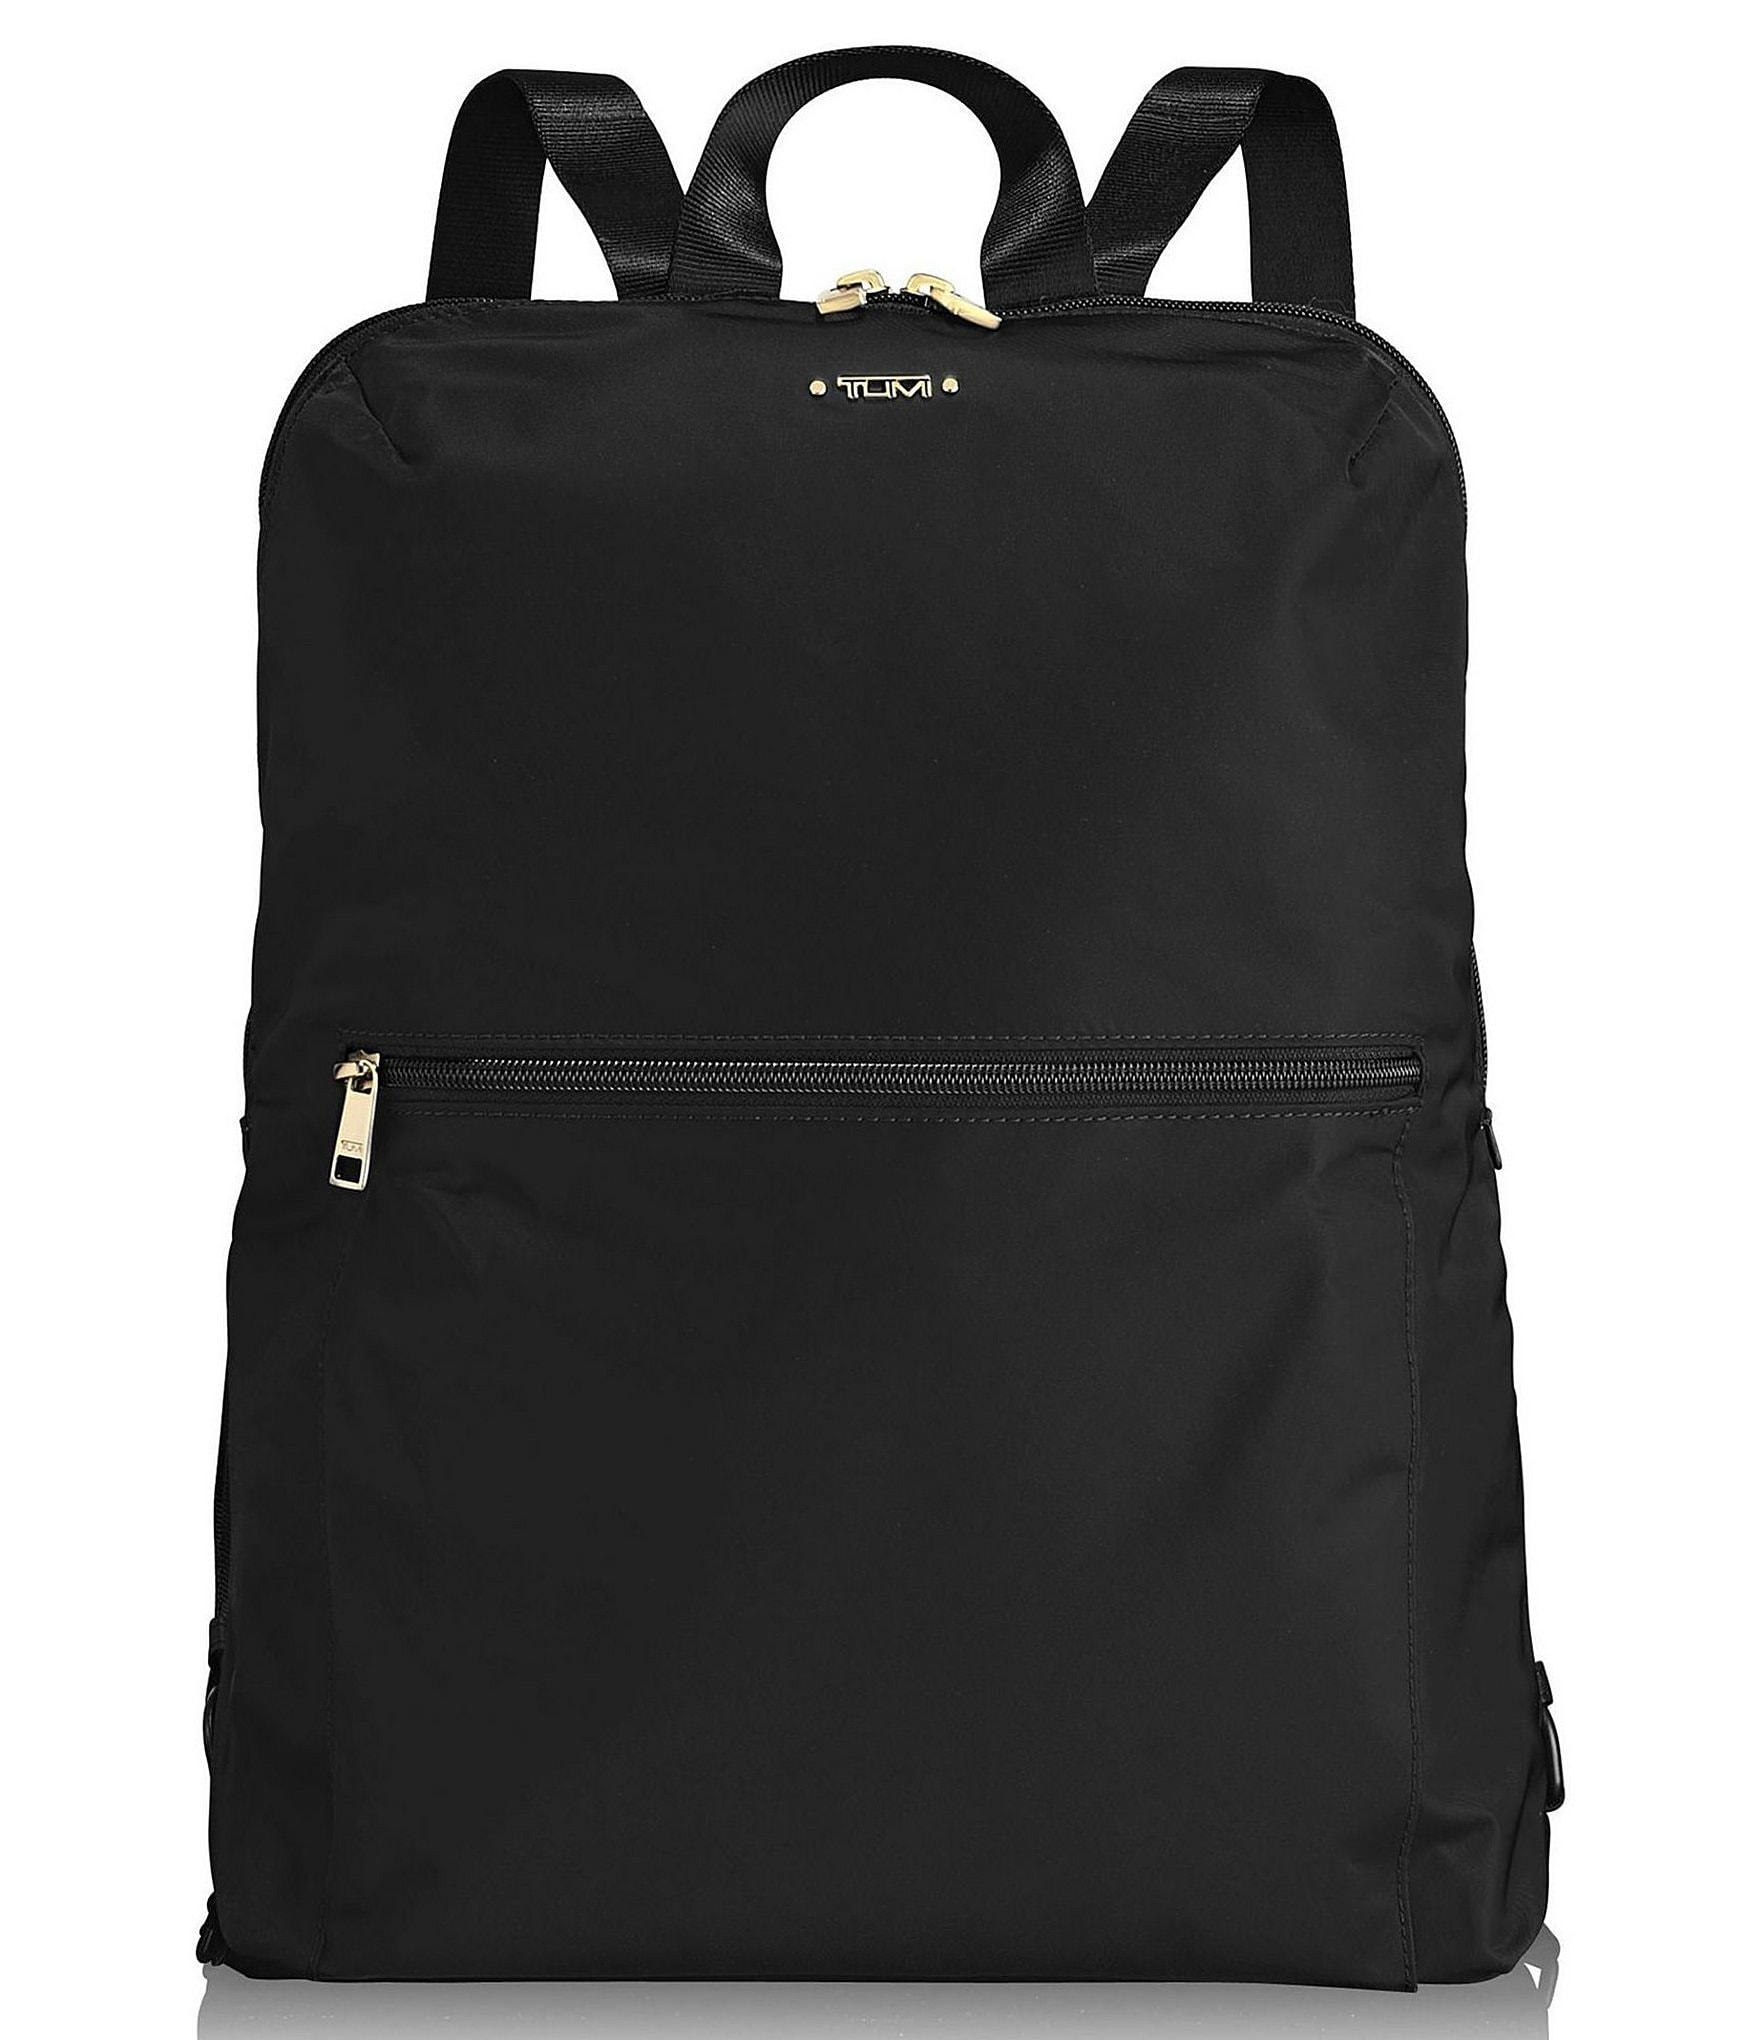 Tumi Voyageur Just In Case Nylon Backpack